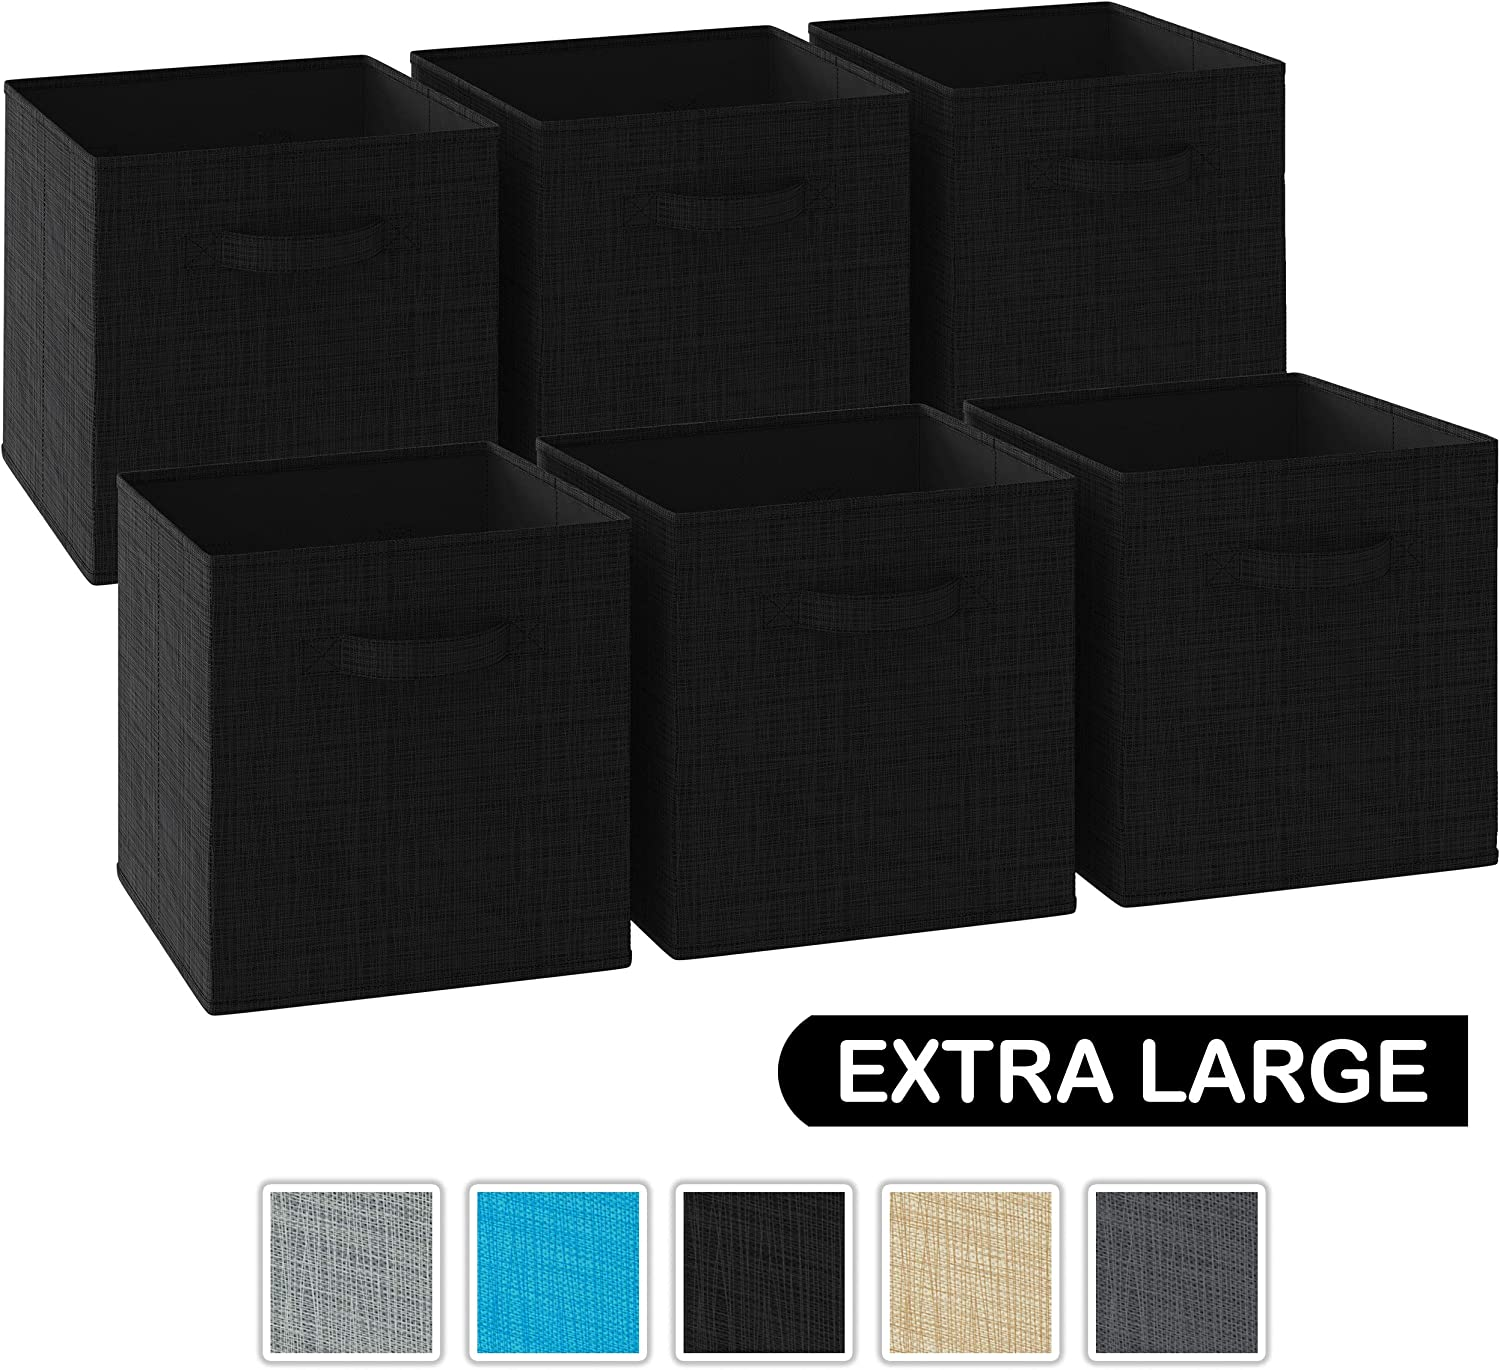 NEATERIZE 13x13x13 Large Storage Cubes - Set of 6 Storage Bins | Features Dual Handles | Cube Storage Bins | Foldable Closet Organizers and Storage | Fabric Storage Box for Home and Office (Black)